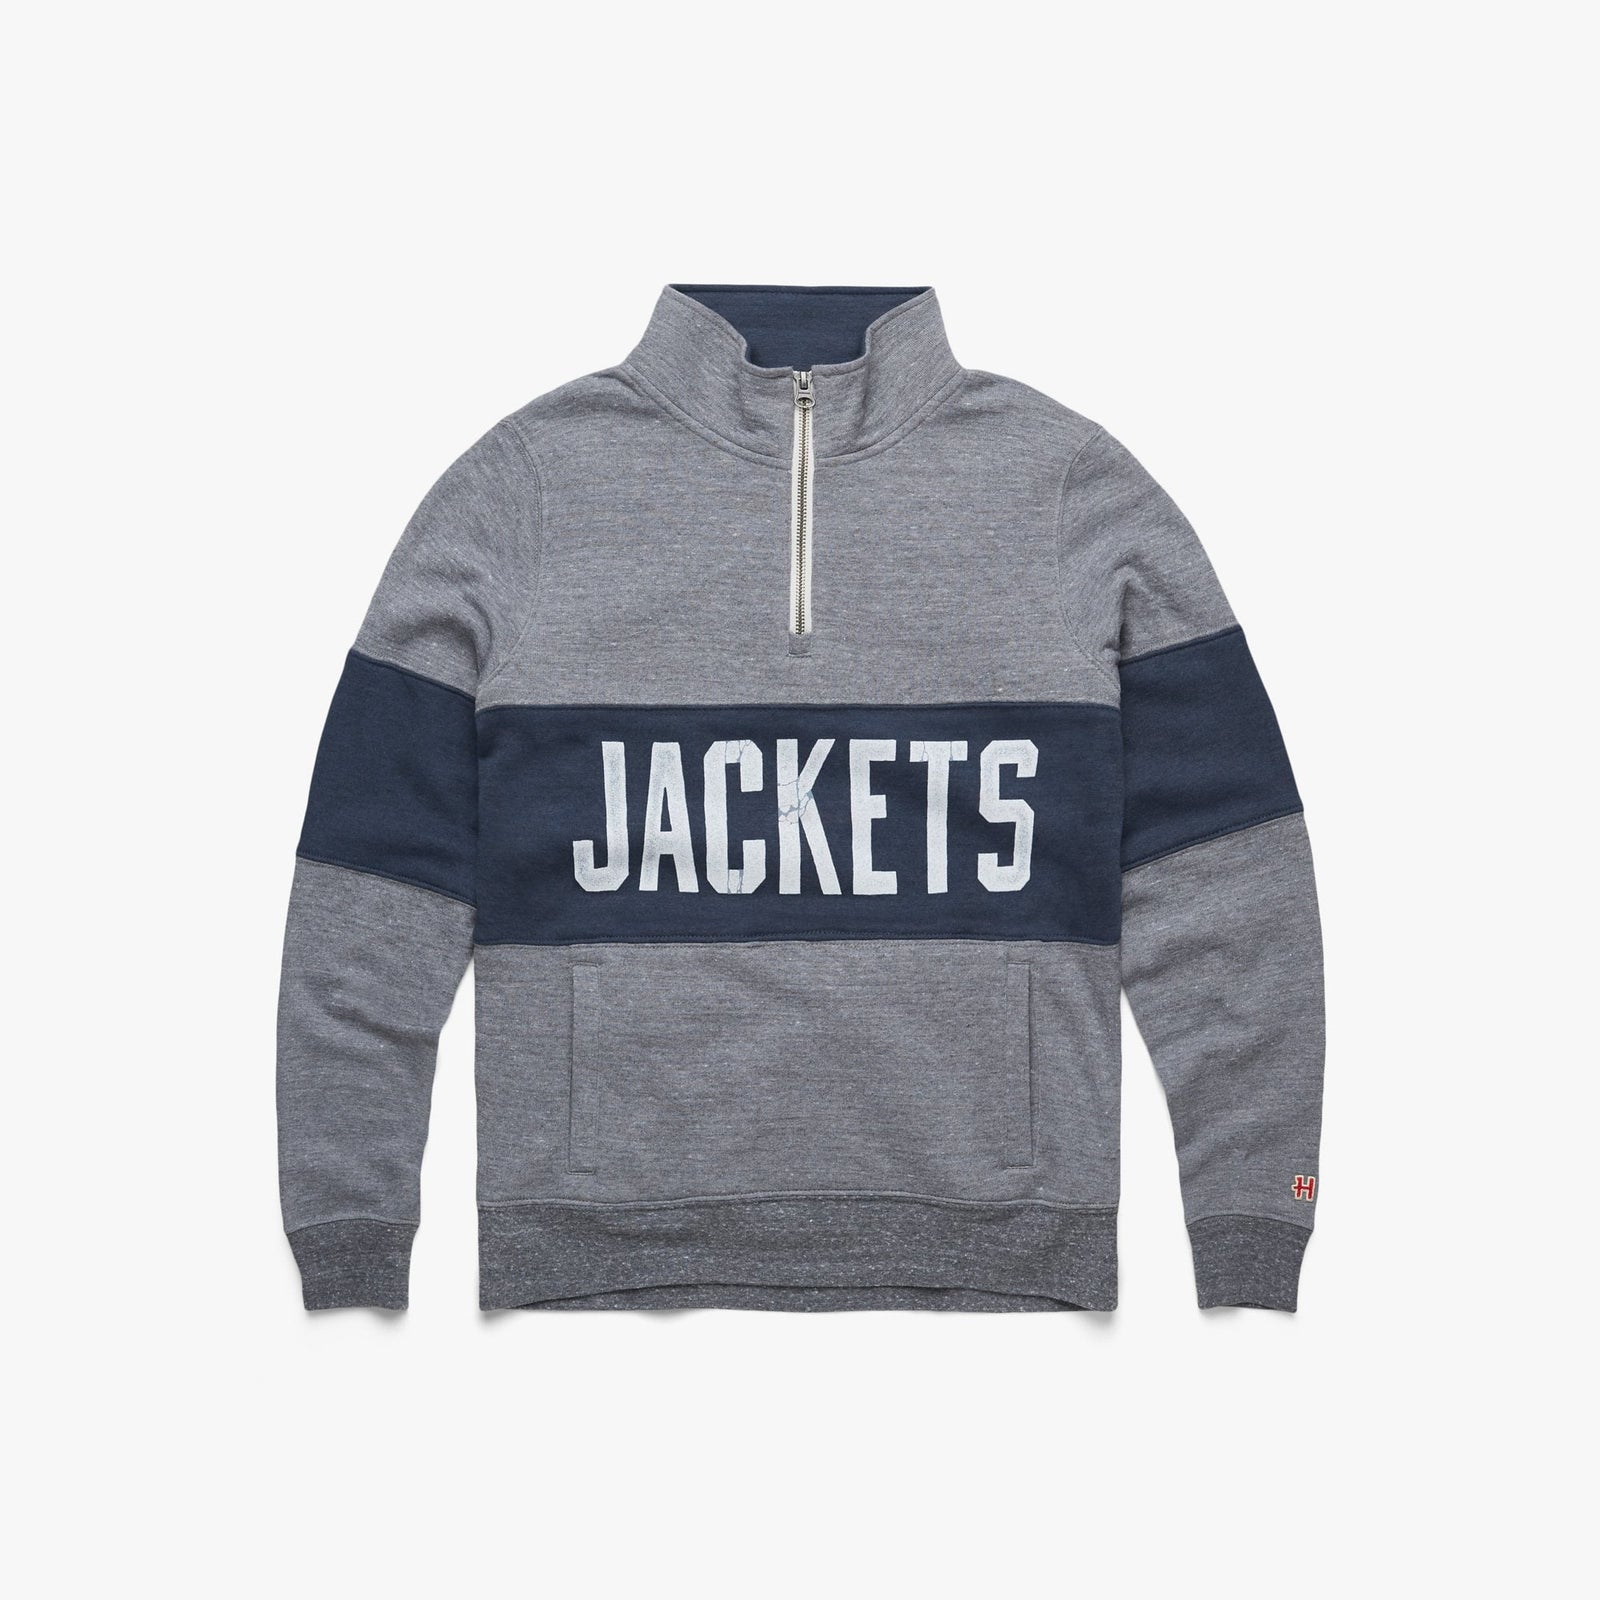 Women's Jackets Retro Quarter Zip